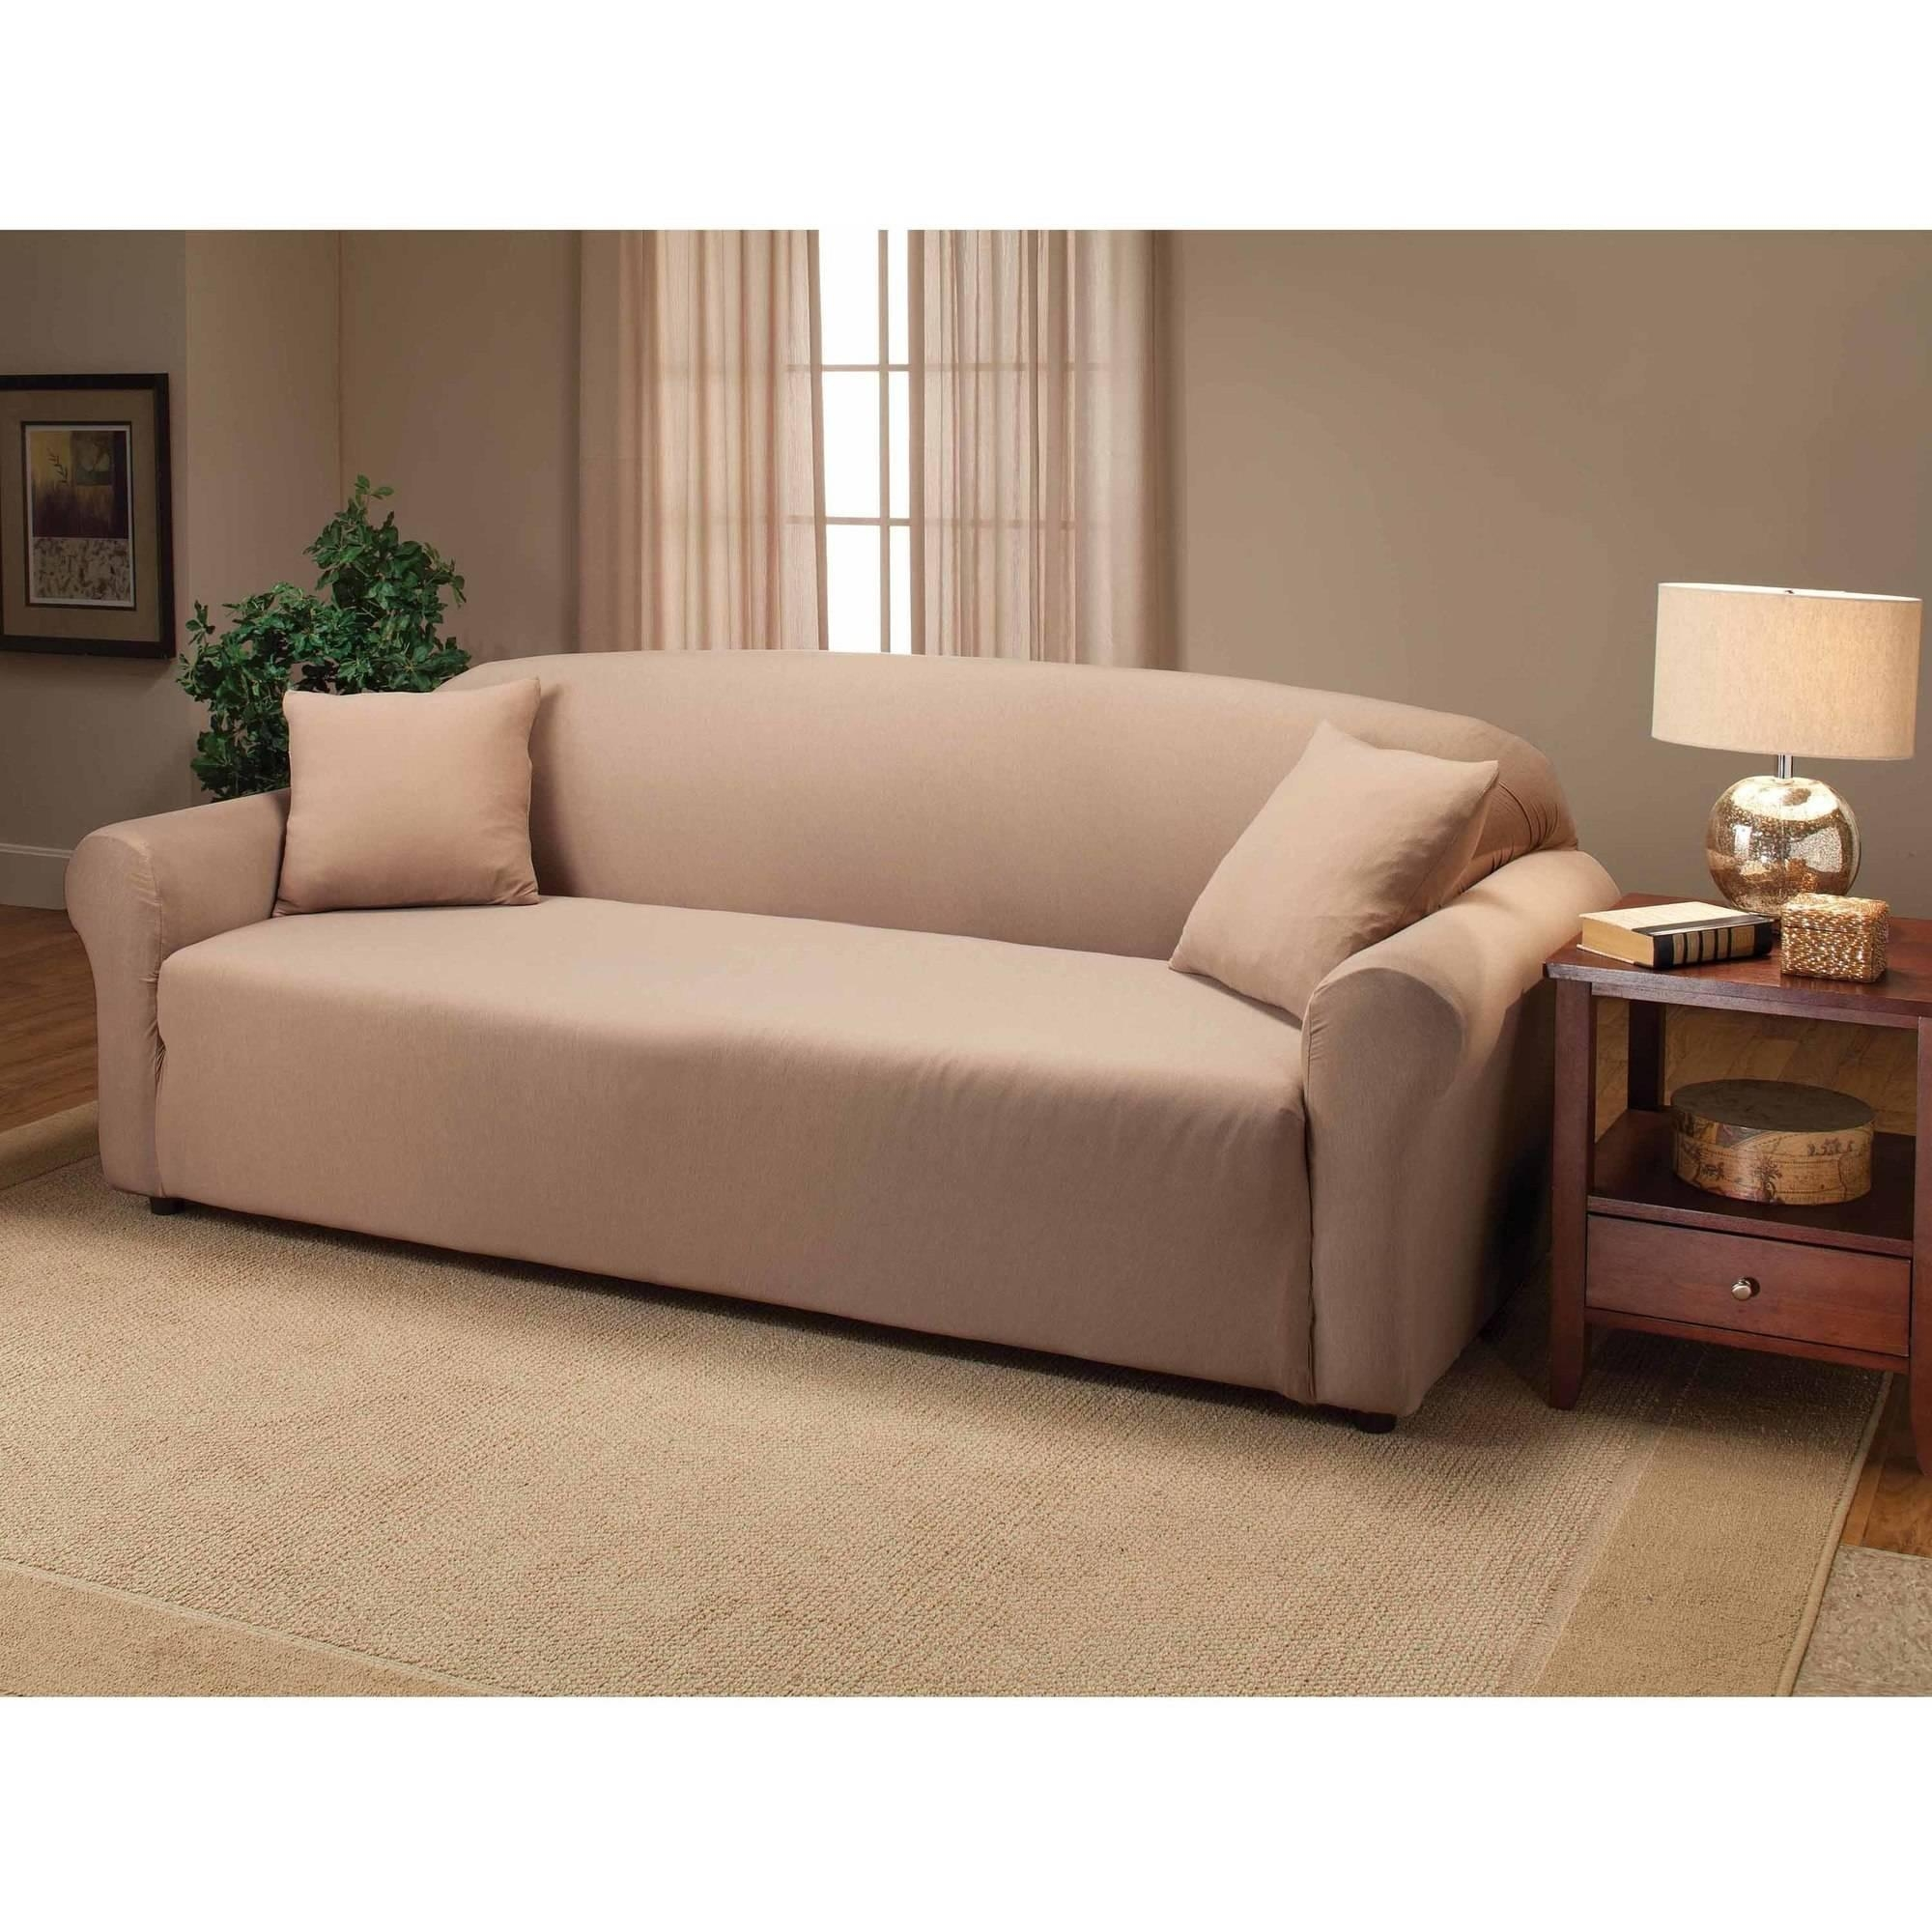 Jersey Stretch Sofa Slipcover – Walmart With Regard To Stretch Slipcover Sofas (Image 5 of 20)